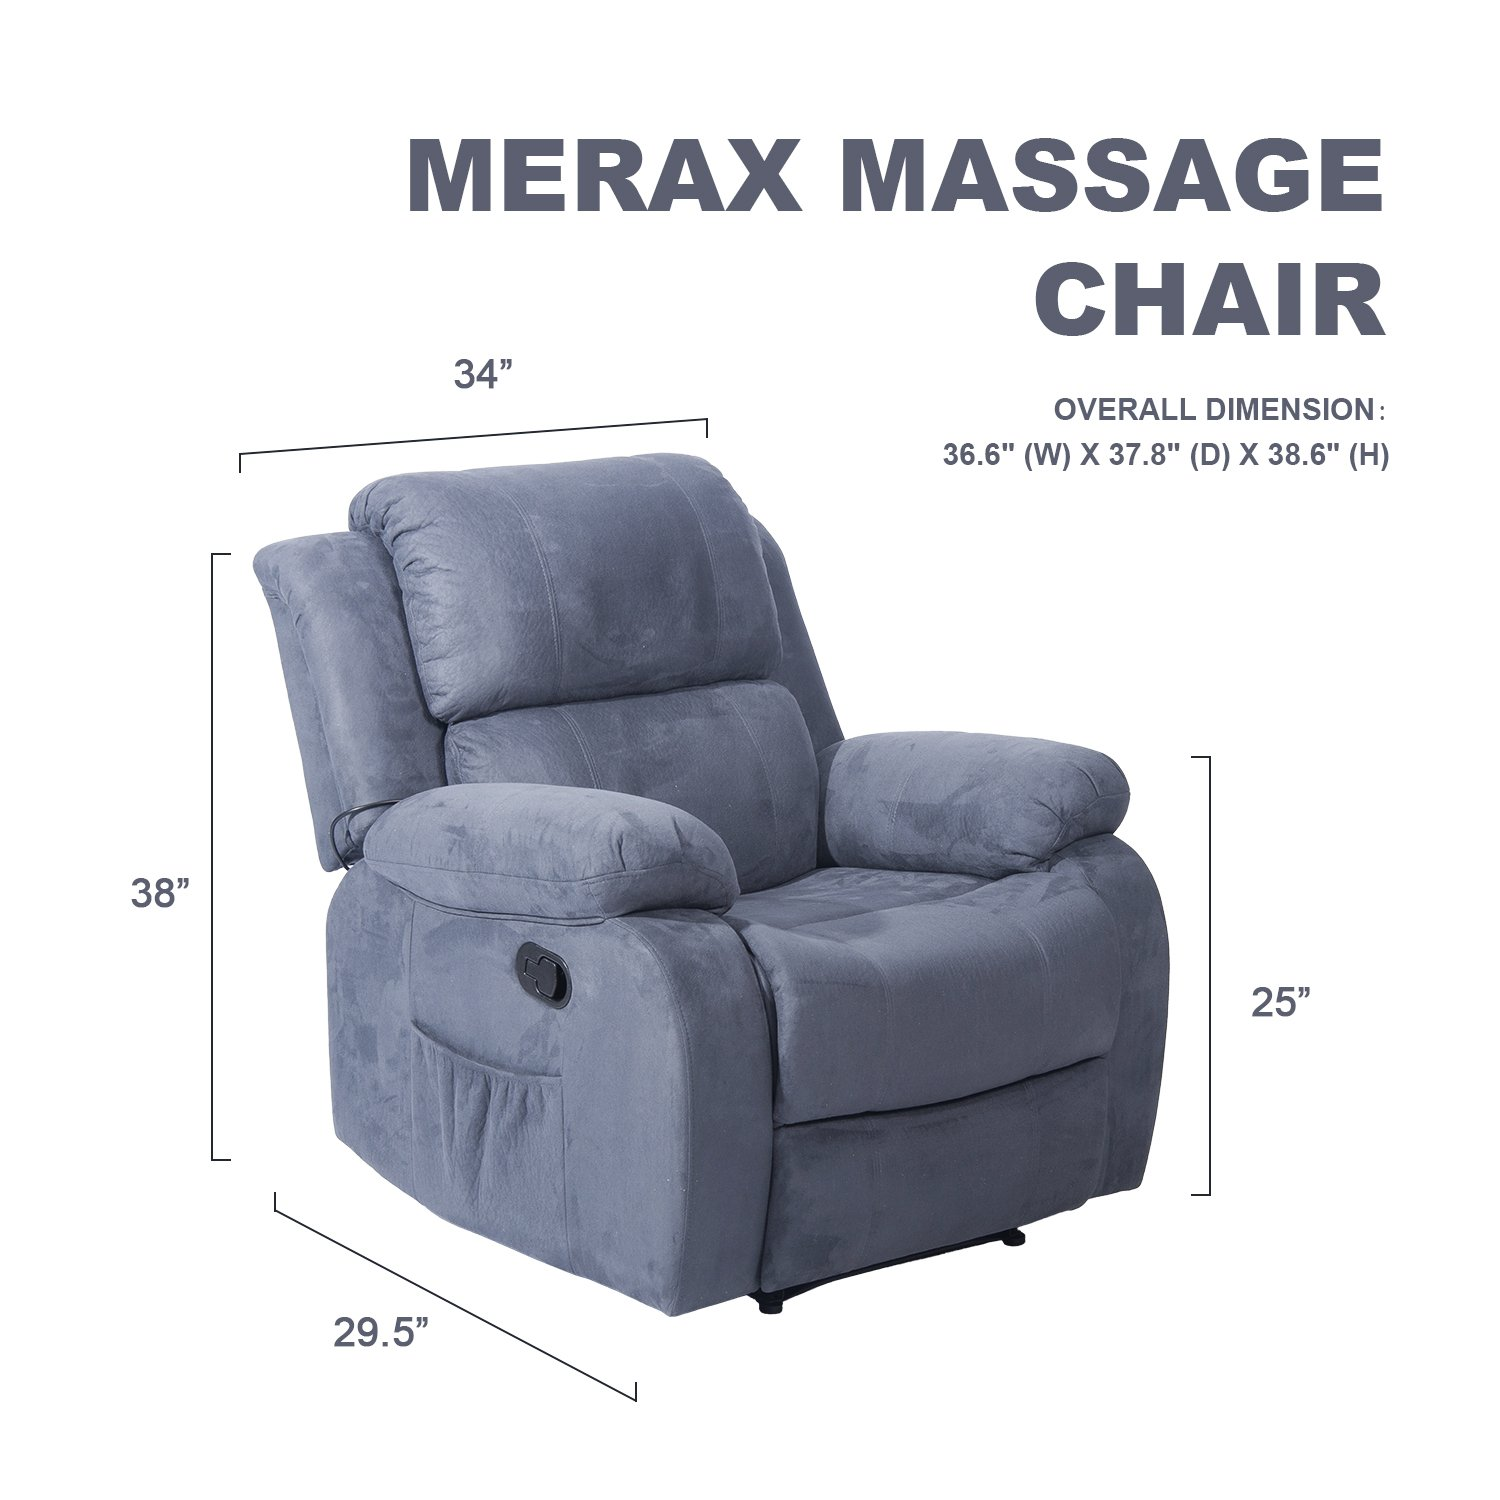 Merax Suede Heated Massage Recliner Sofa Chair Ergonomic Lounge with 8 Vibration Motors, Grey by Merax (Image #5)